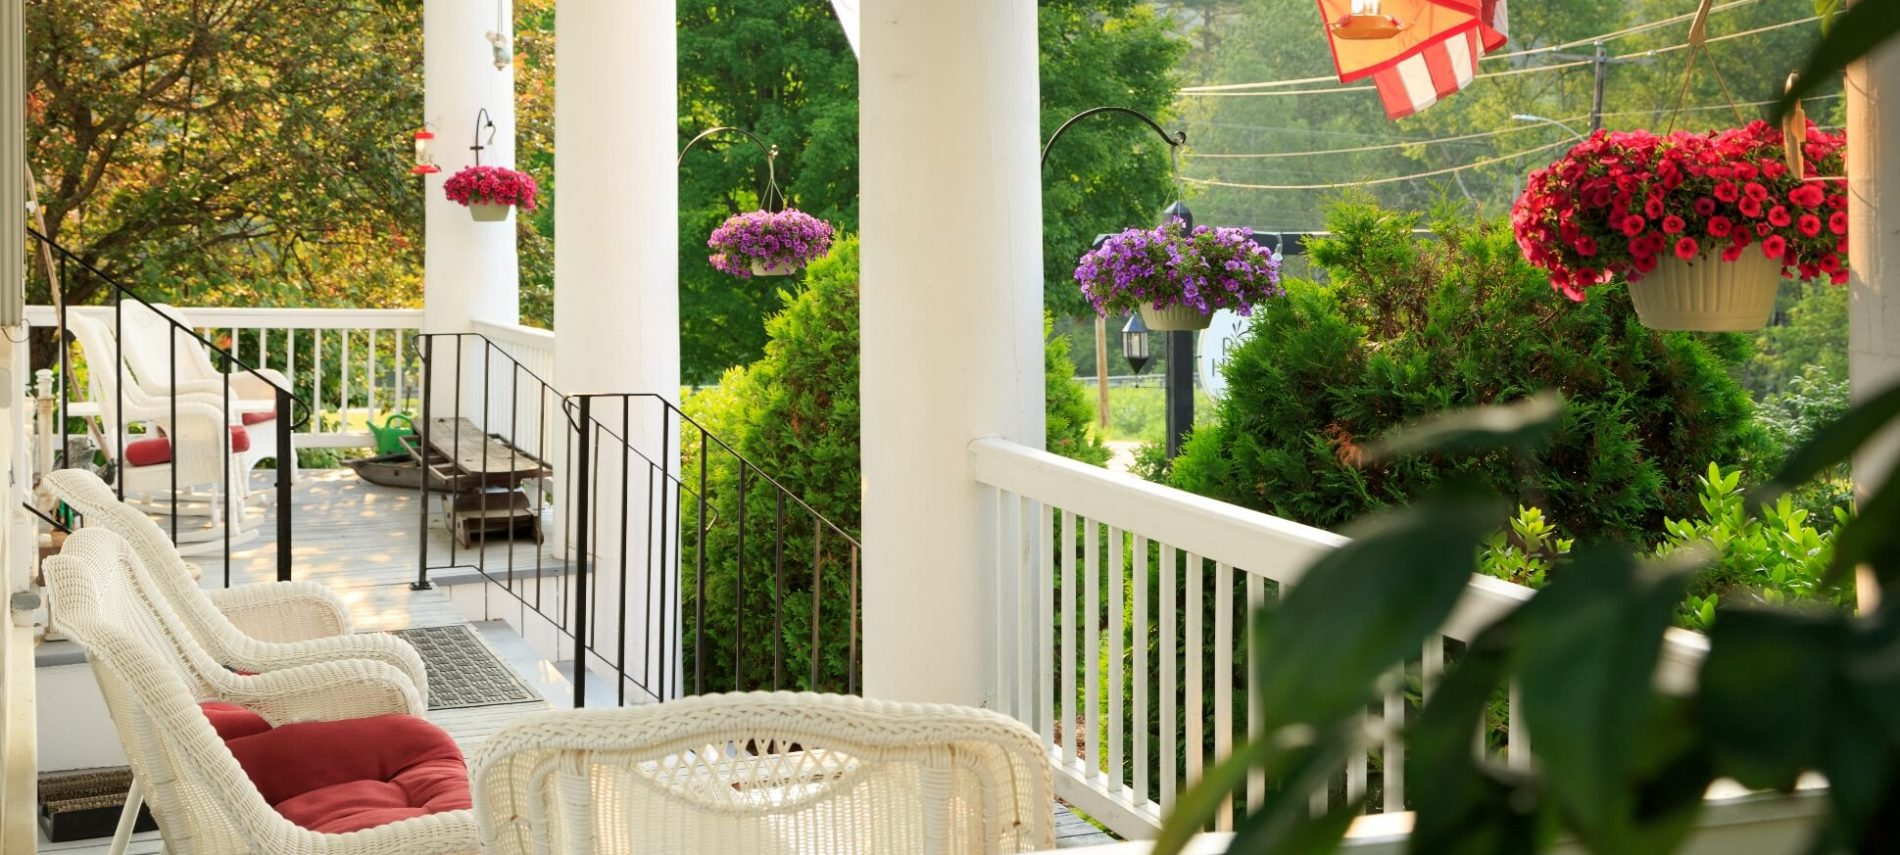 front porch in summer with colorful hanging plants